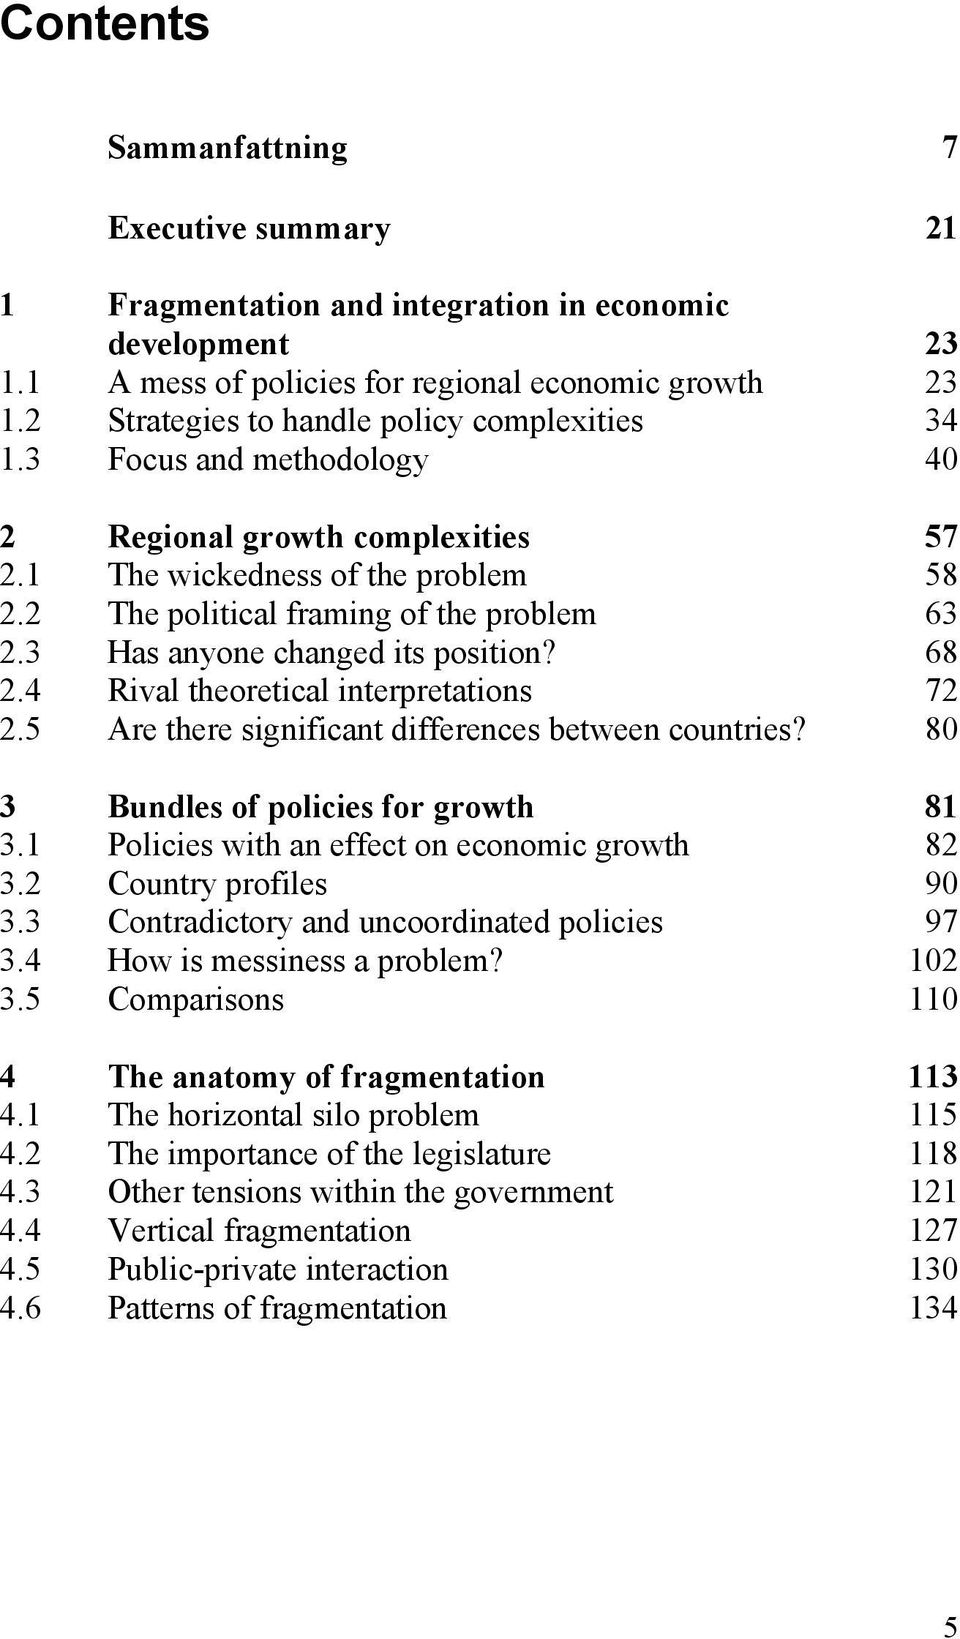 3 Has anyone changed its position? 68 2.4 Rival theoretical interpretations 72 2.5 Are there significant differences between countries? 80 3 Bundles of policies for growth 81 3.